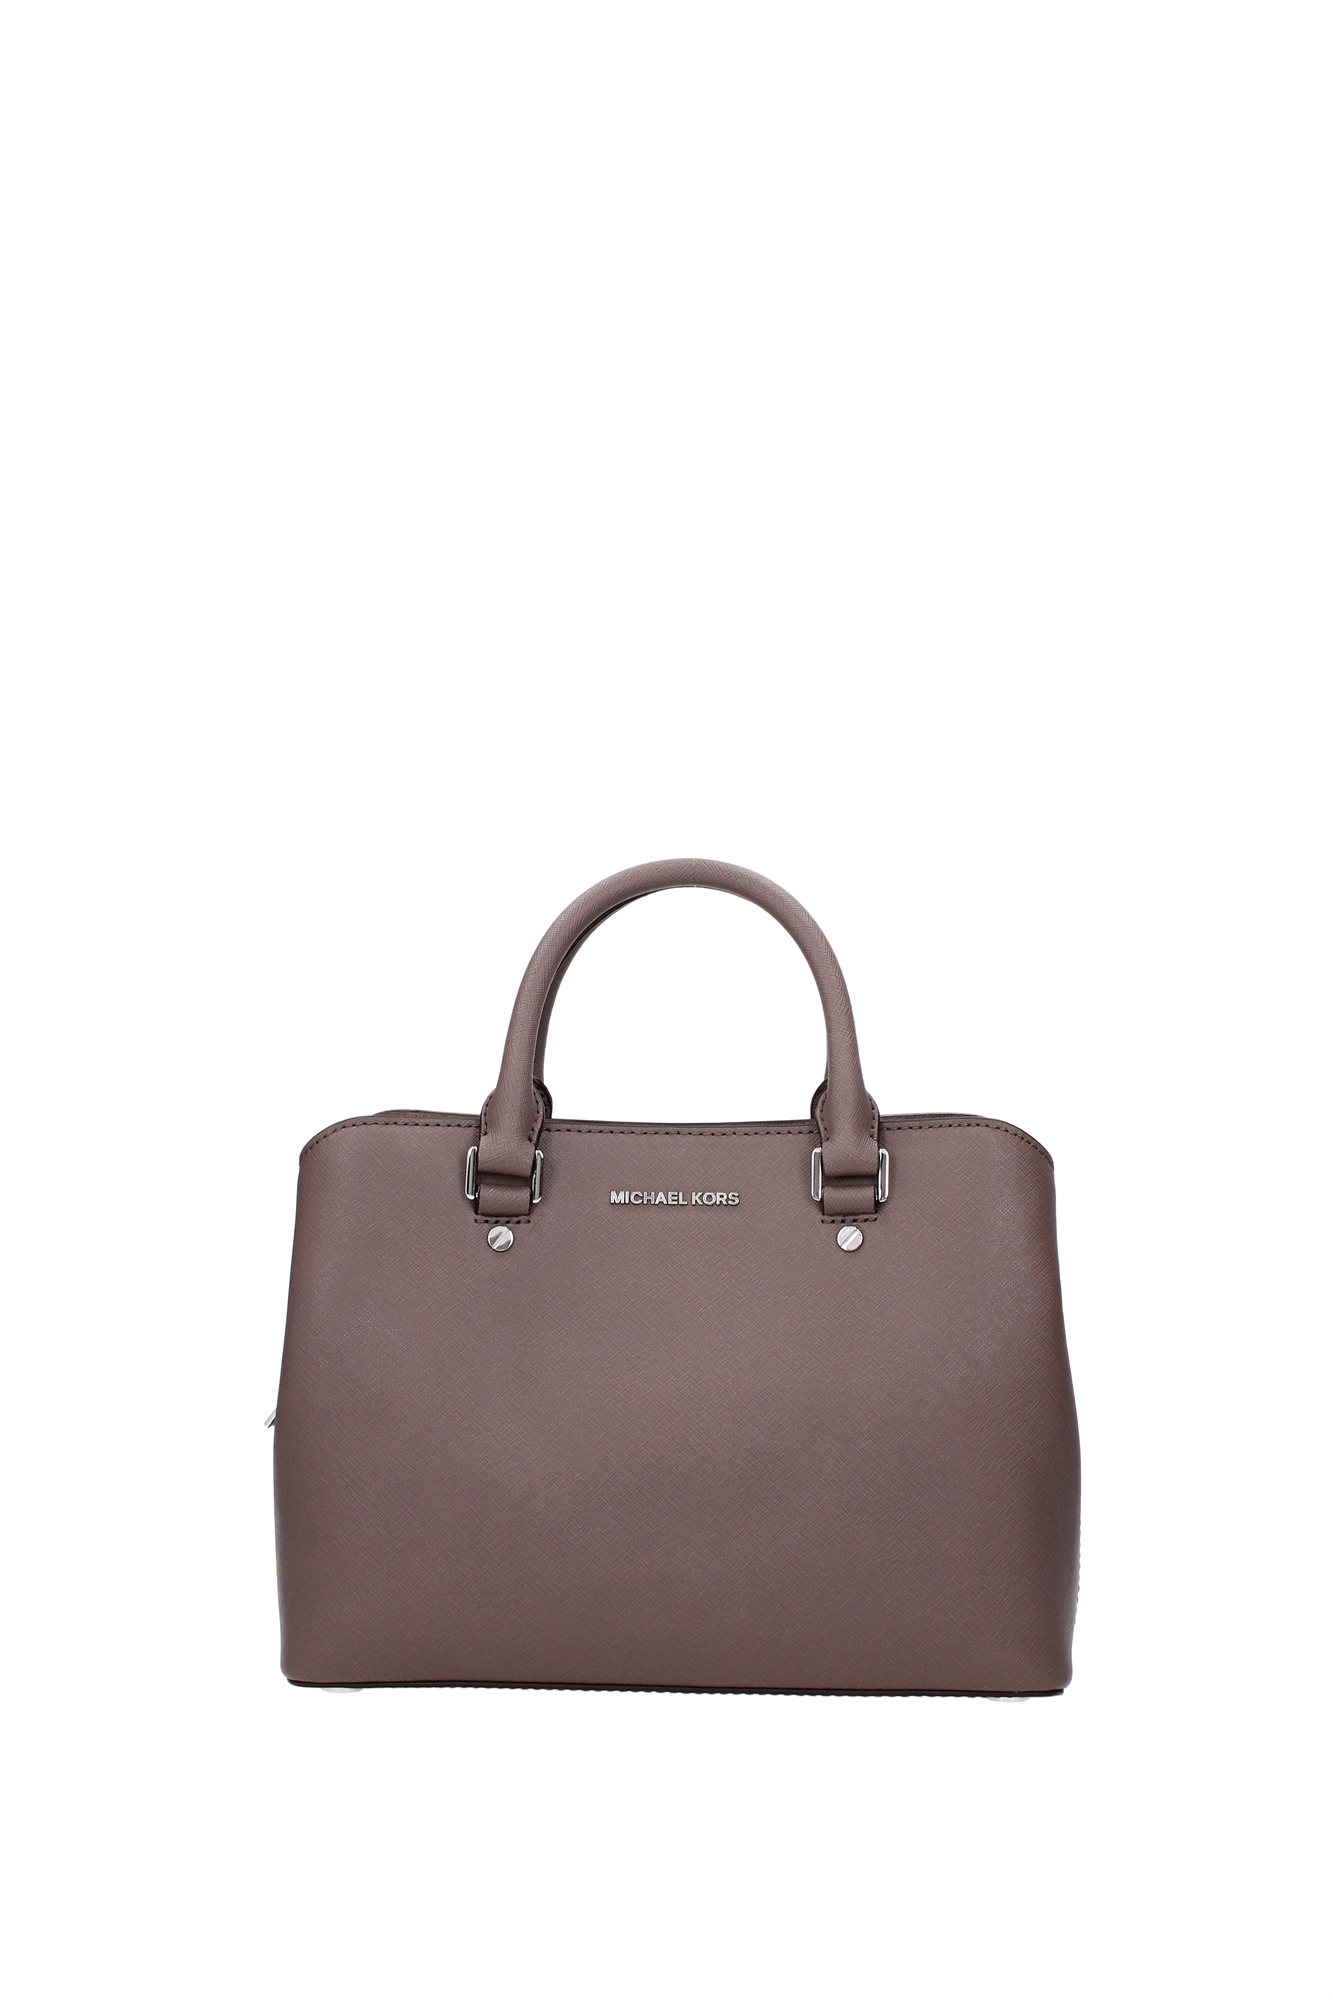 Elegant The Portfolio Features The Most Exciting, Interesting And Beautiful Women In Britain Right Now  In Particular, In Our Own Stores, We Will Start That With The Michael Kors Collection Handbags I Talked To You About Bancroft, Which Landed In